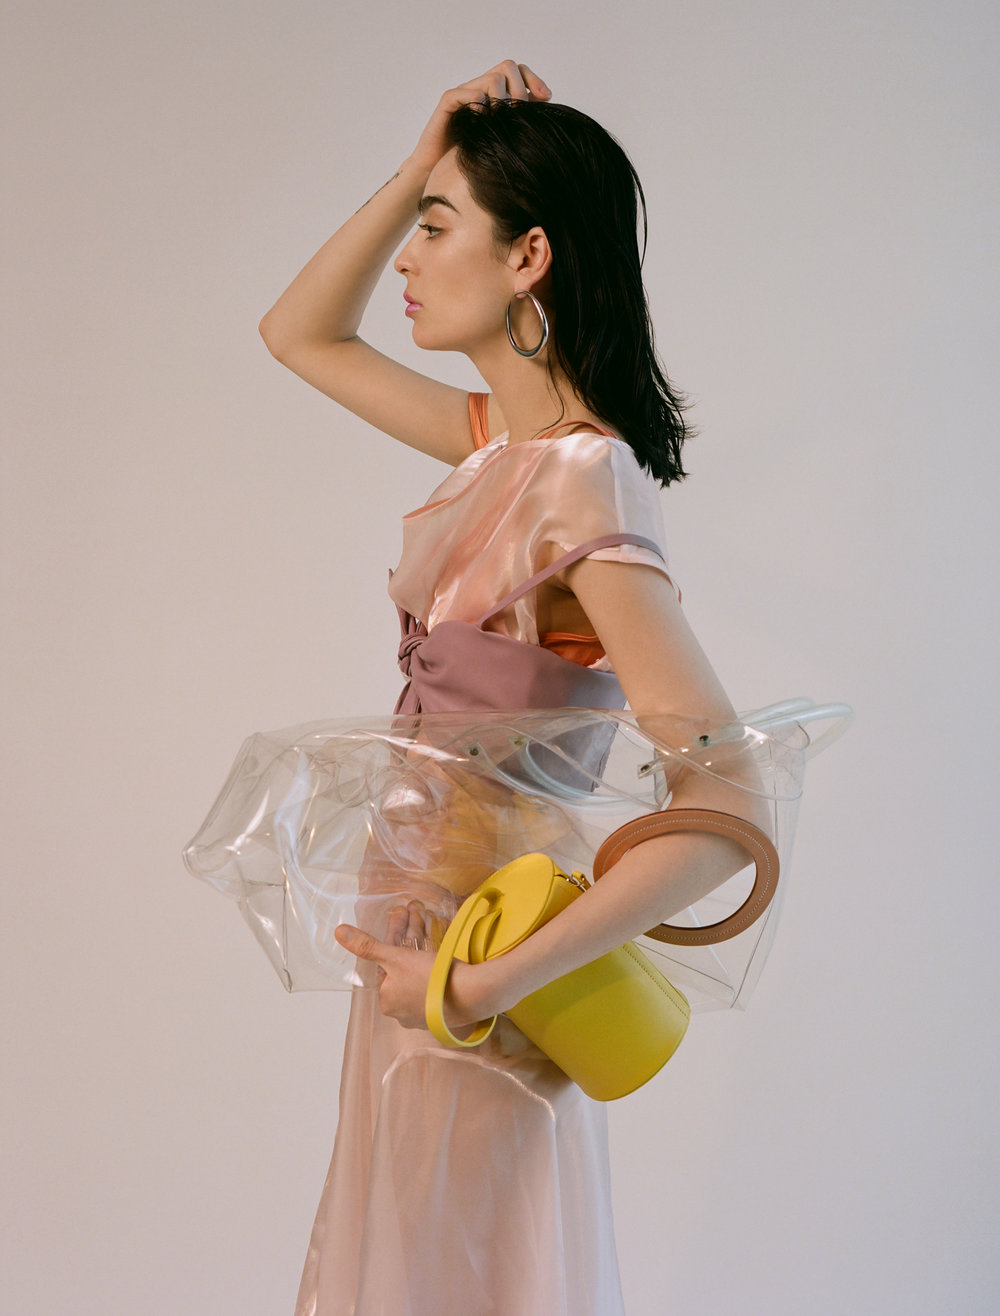 Organza dress  ADEAM    Silk top underneath  BASERANGE    Bow bra  NANUSHKA   Earrings  Stylist's Own    Transparent bag  BUILDING BLOCK    Yellow bag  BUILDING BLOCK